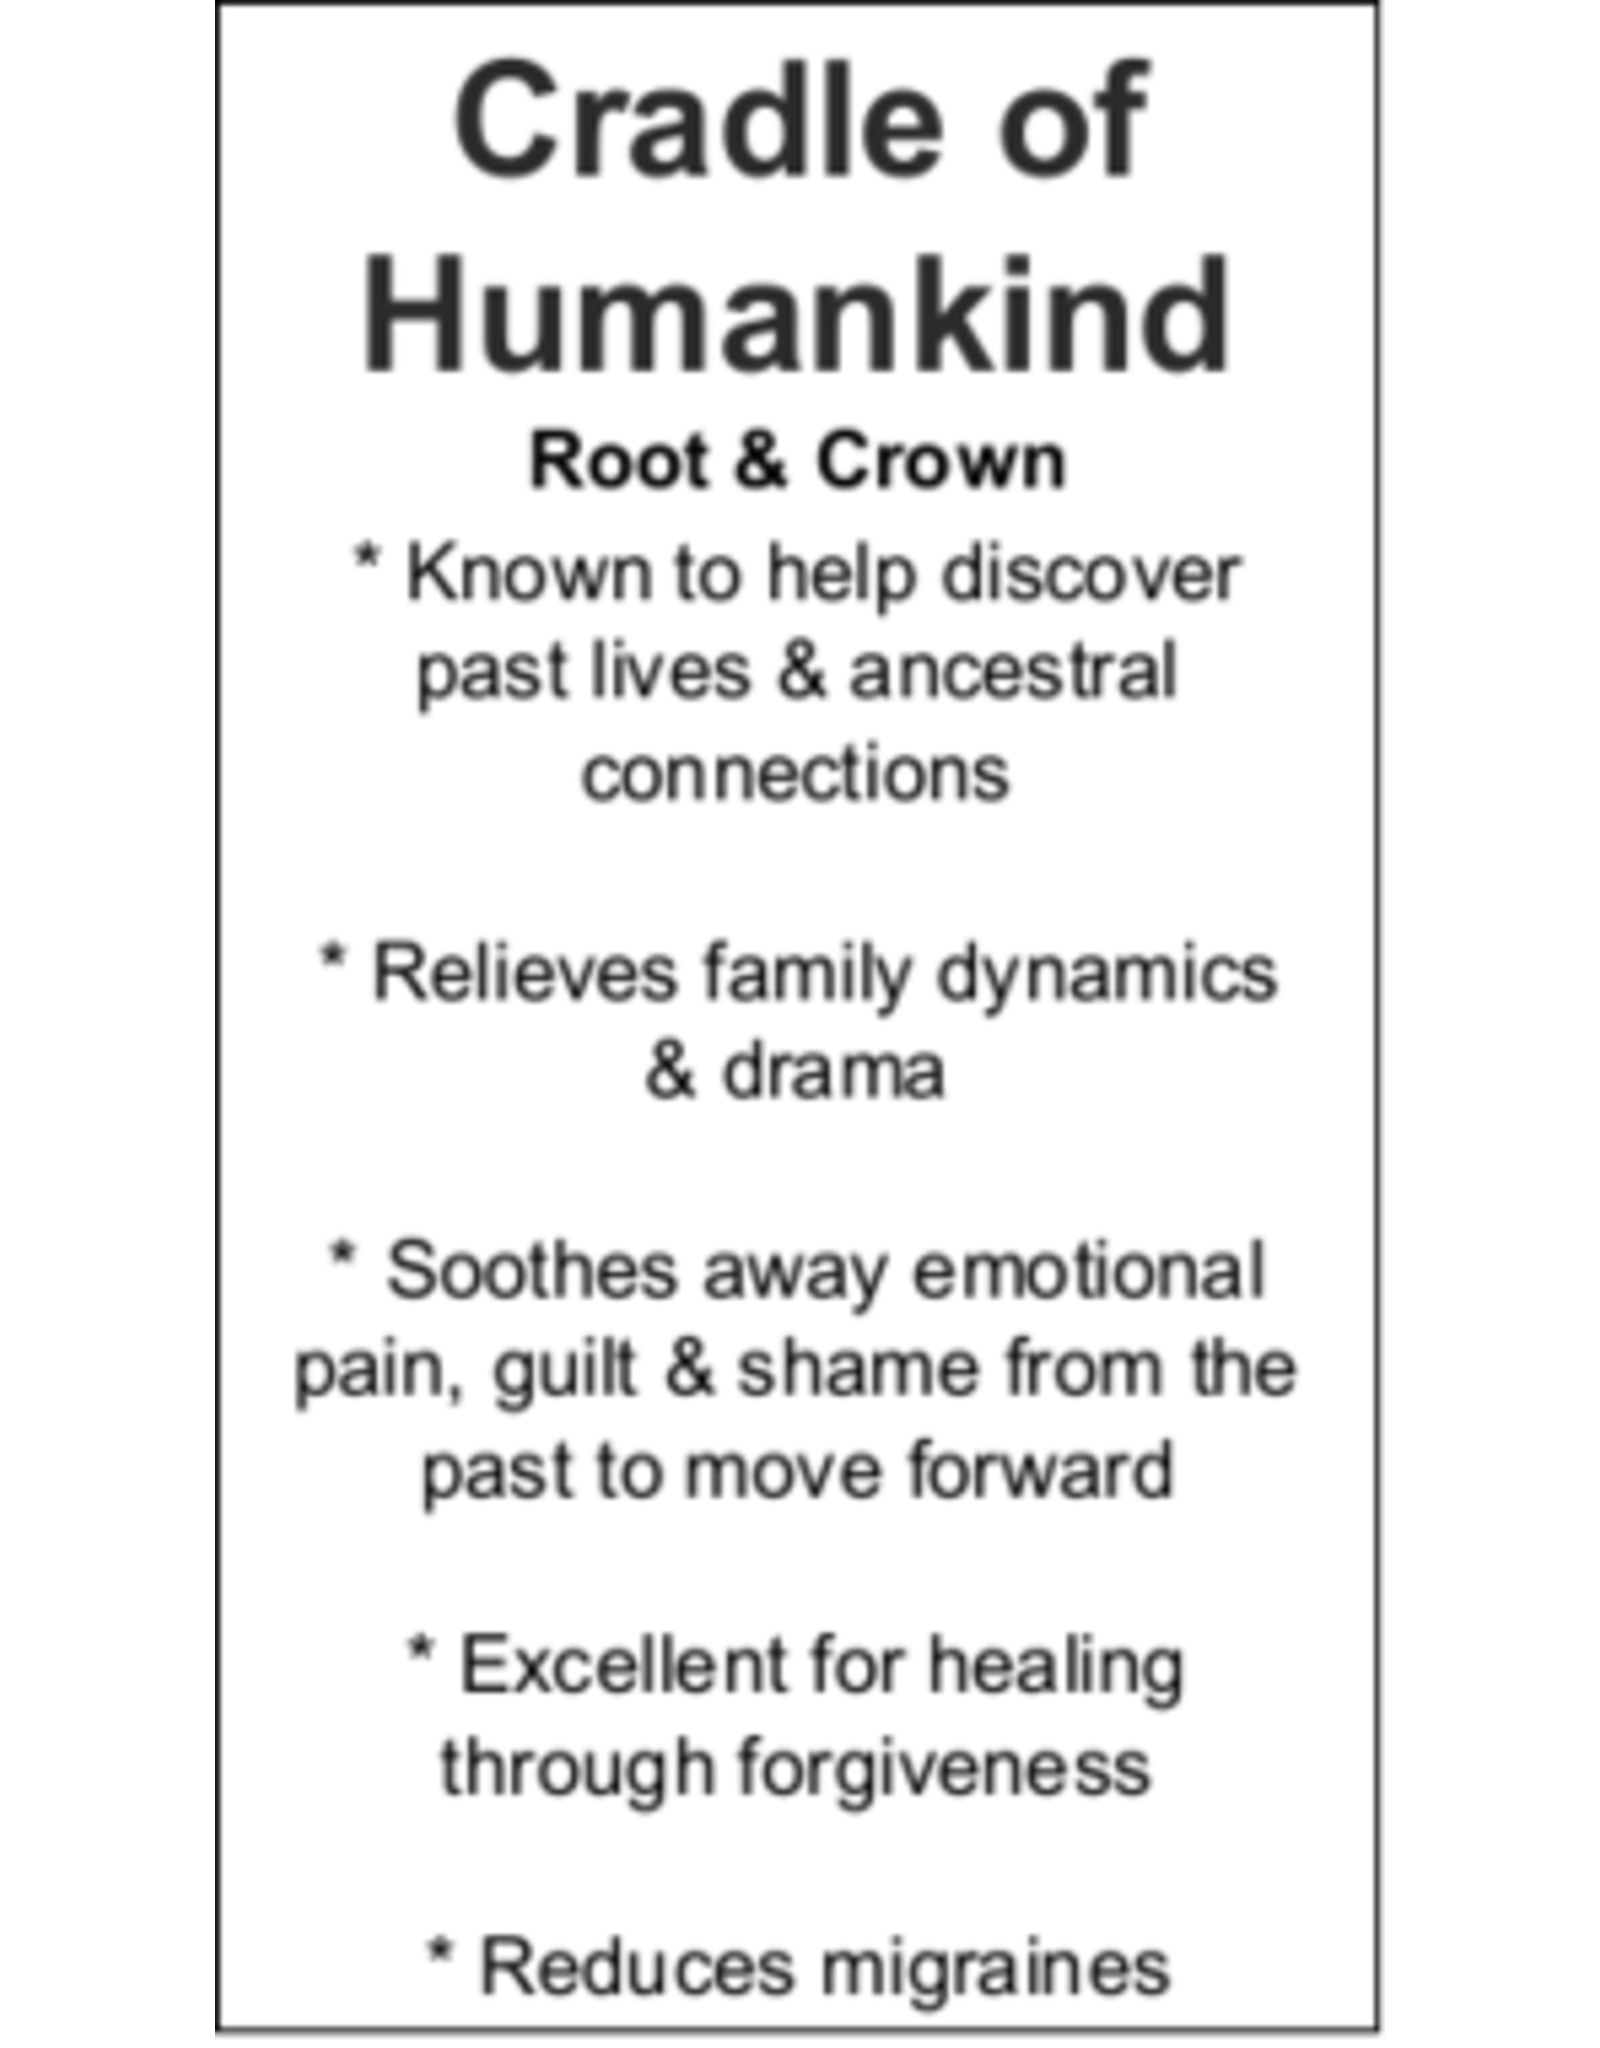 Cradle of Humankind - Card